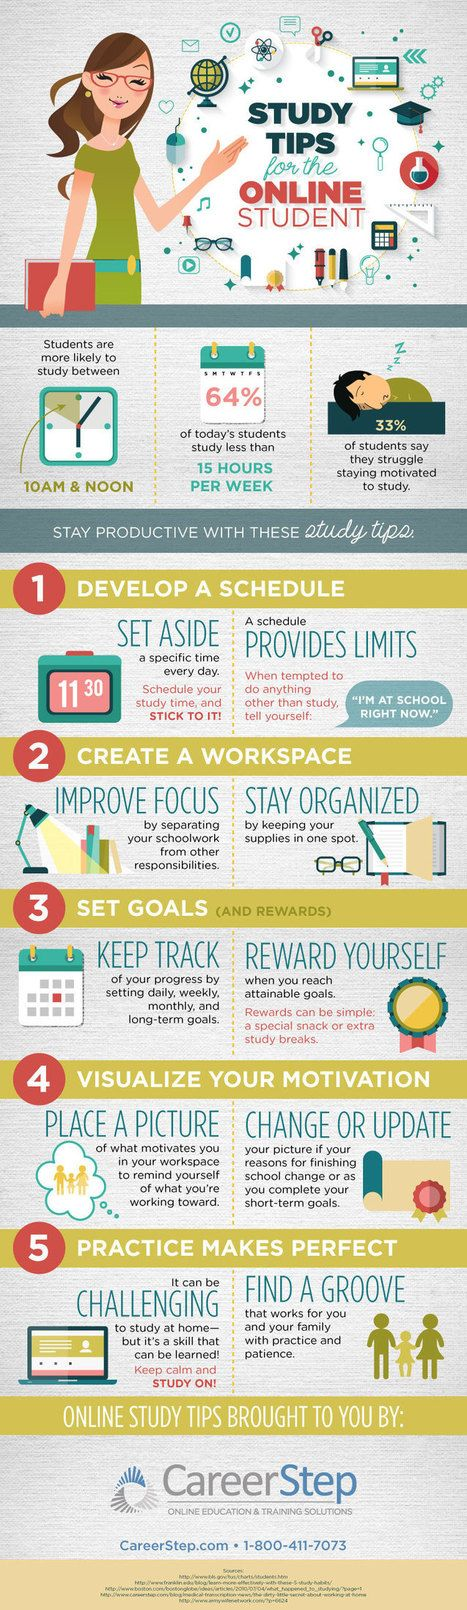 5 Great Study Tips For Online Students Infographic - e-Learning Infographics